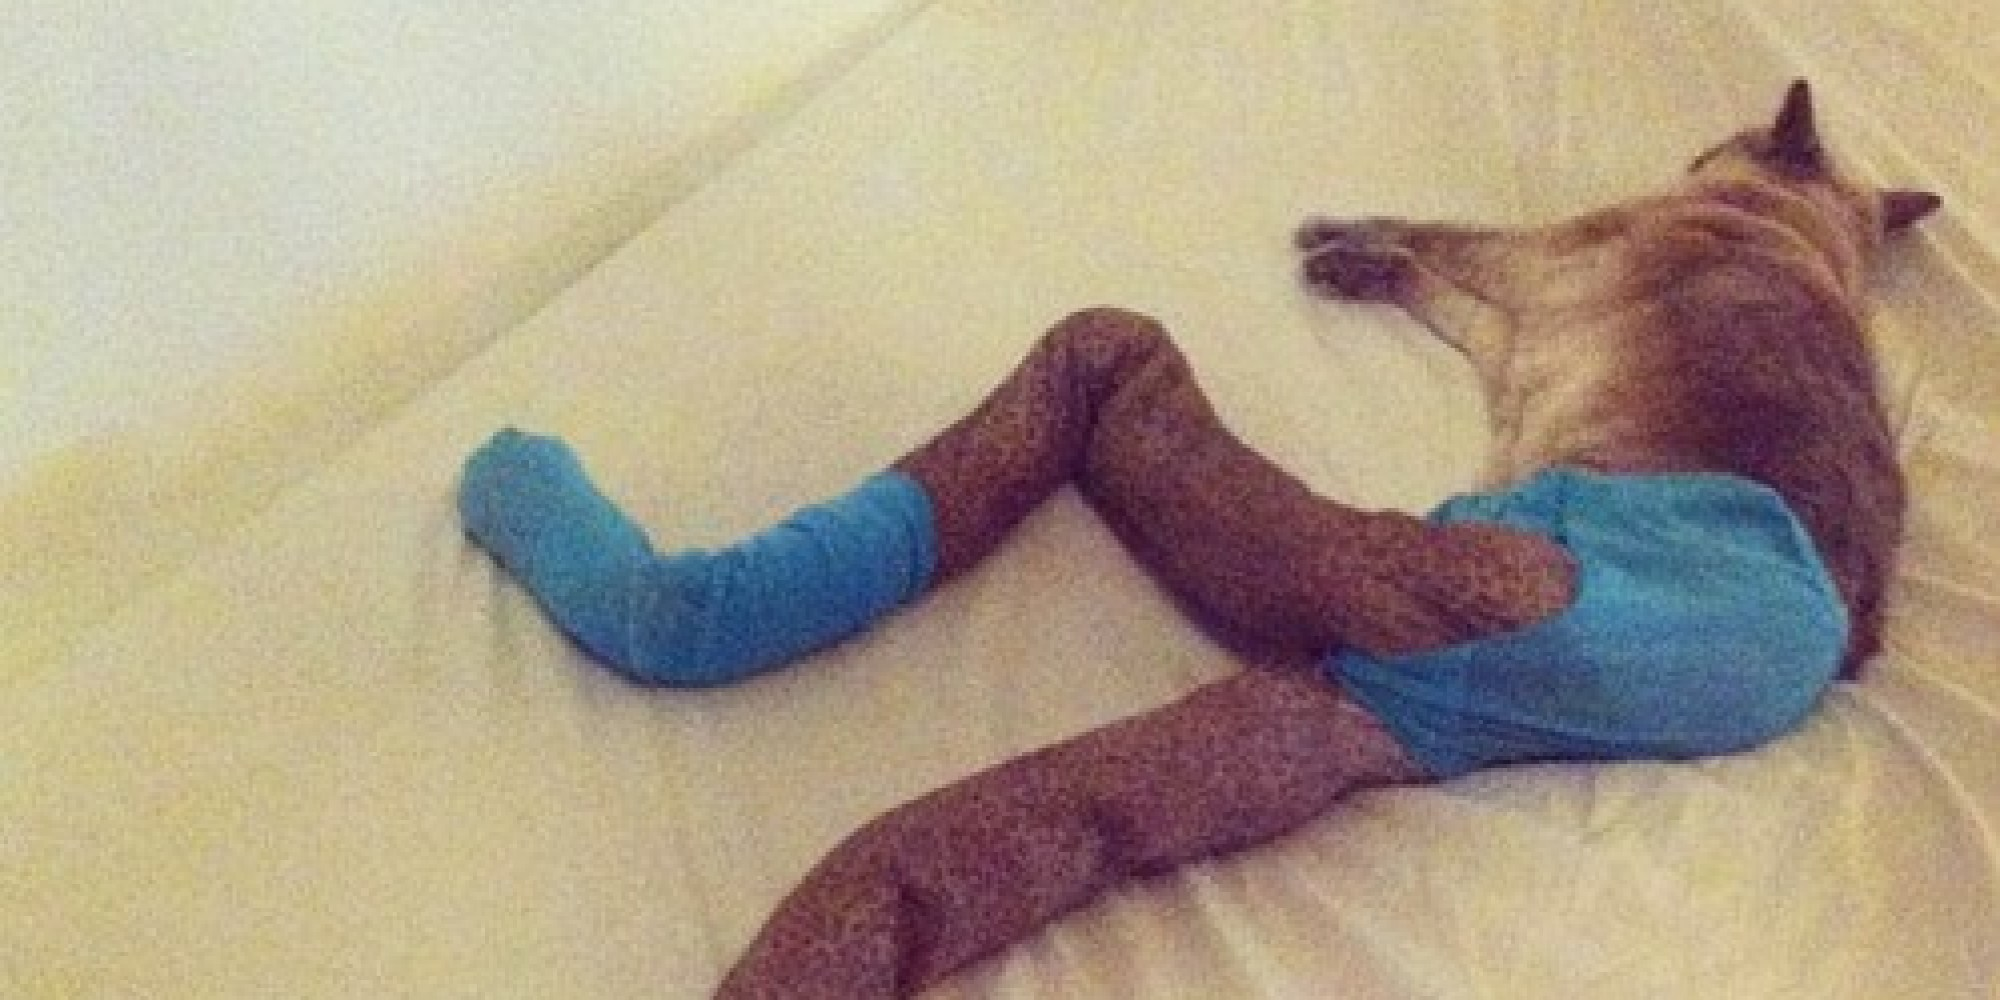 cats wearing tights that is all pictures